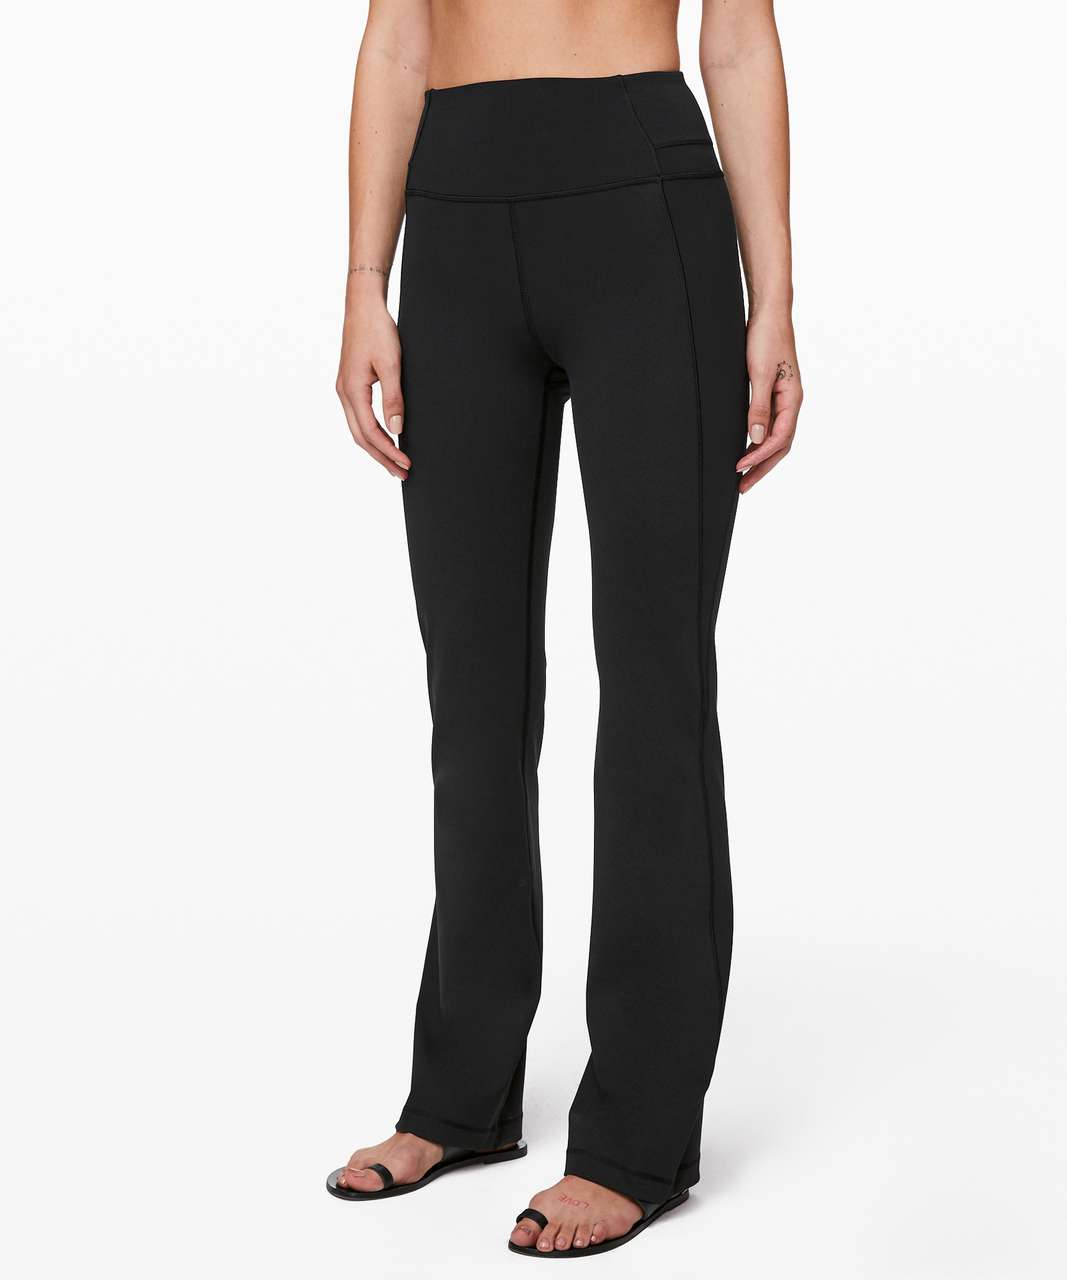 "Lululemon Groove Pant Bootcut 32"" Full-On Luxtreme - Black"